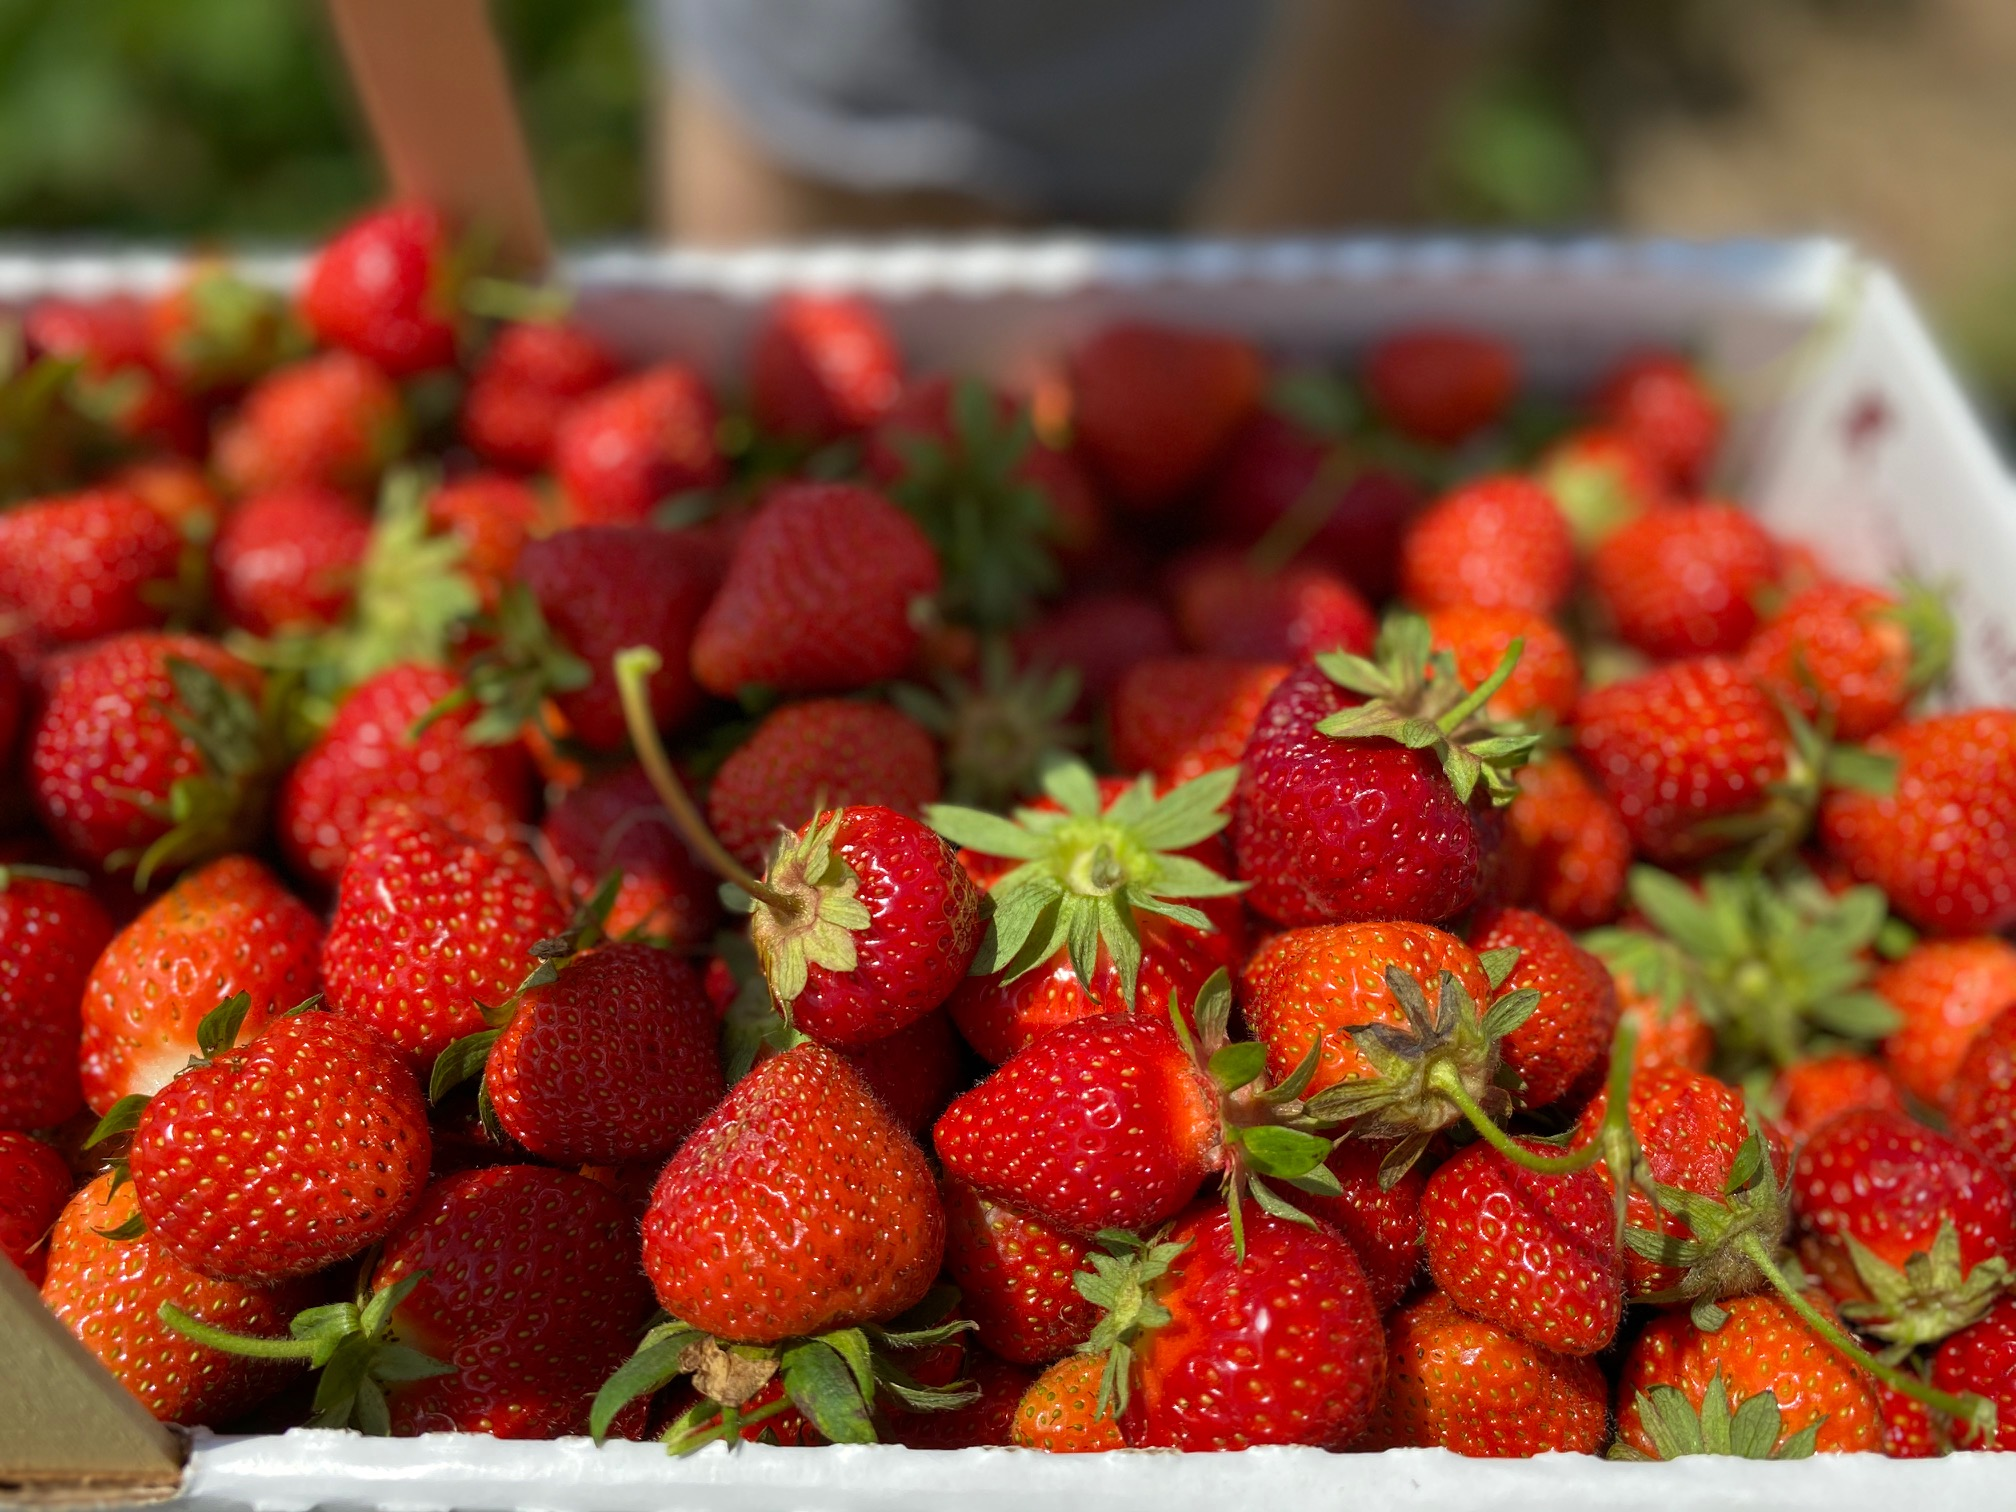 Enjoy the best of summer safely by Strawberry Picking at Jones Family Farm in Shelton, Connecticut. Check out more about this family-friendly activity.